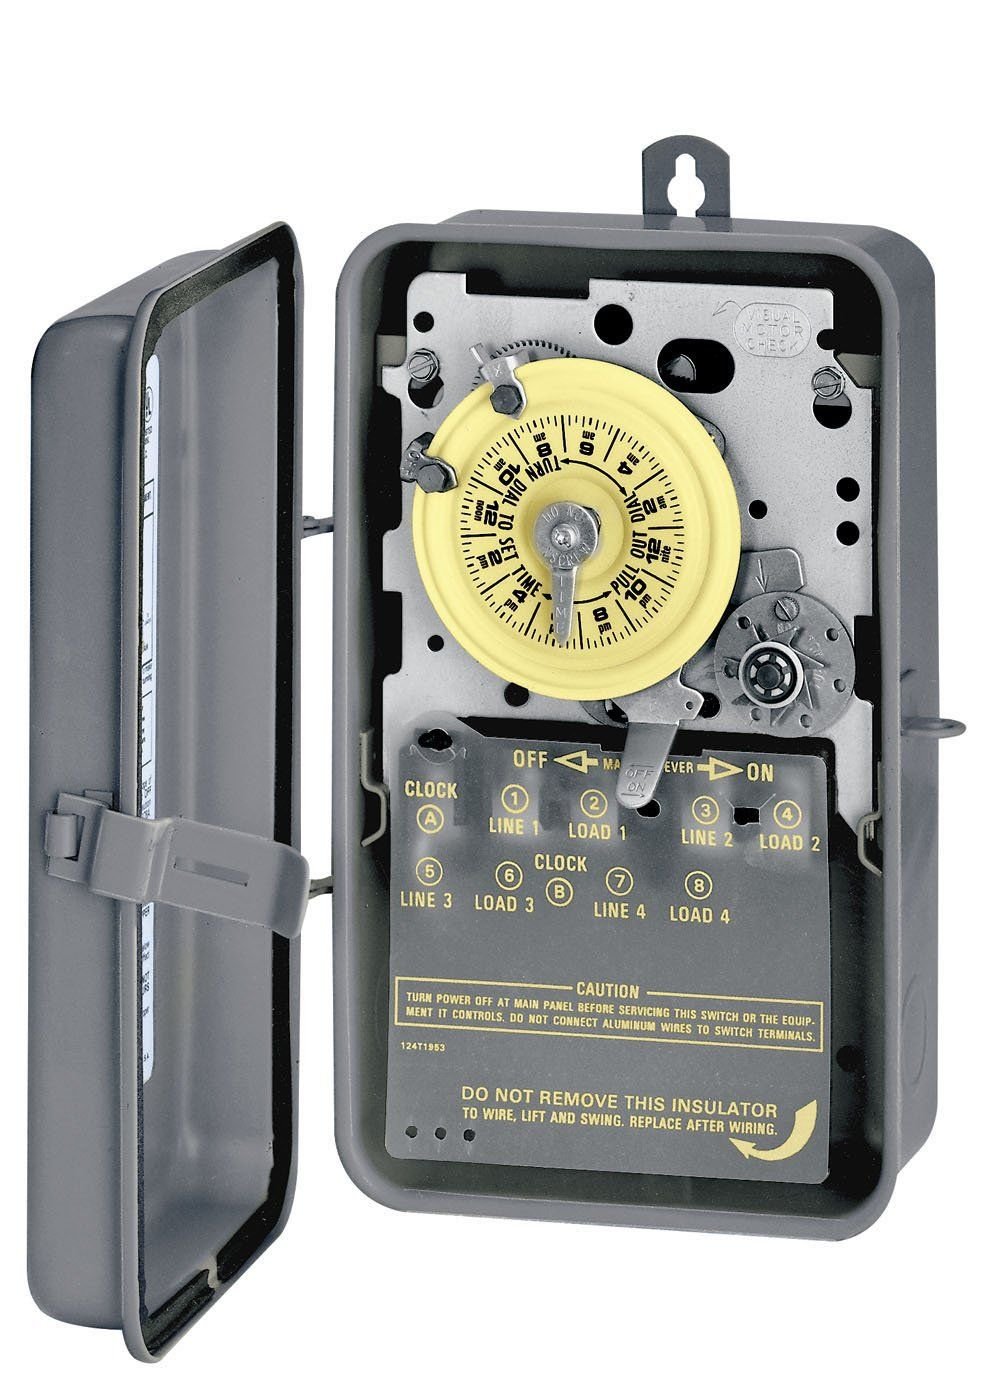 Intermatic T1471br 4pst 24 Hour 125 Volt Time Switch With 3r Steel Case Want Additional Info Clic Electrical Switches Digital Timer Wireless Video Doorbell